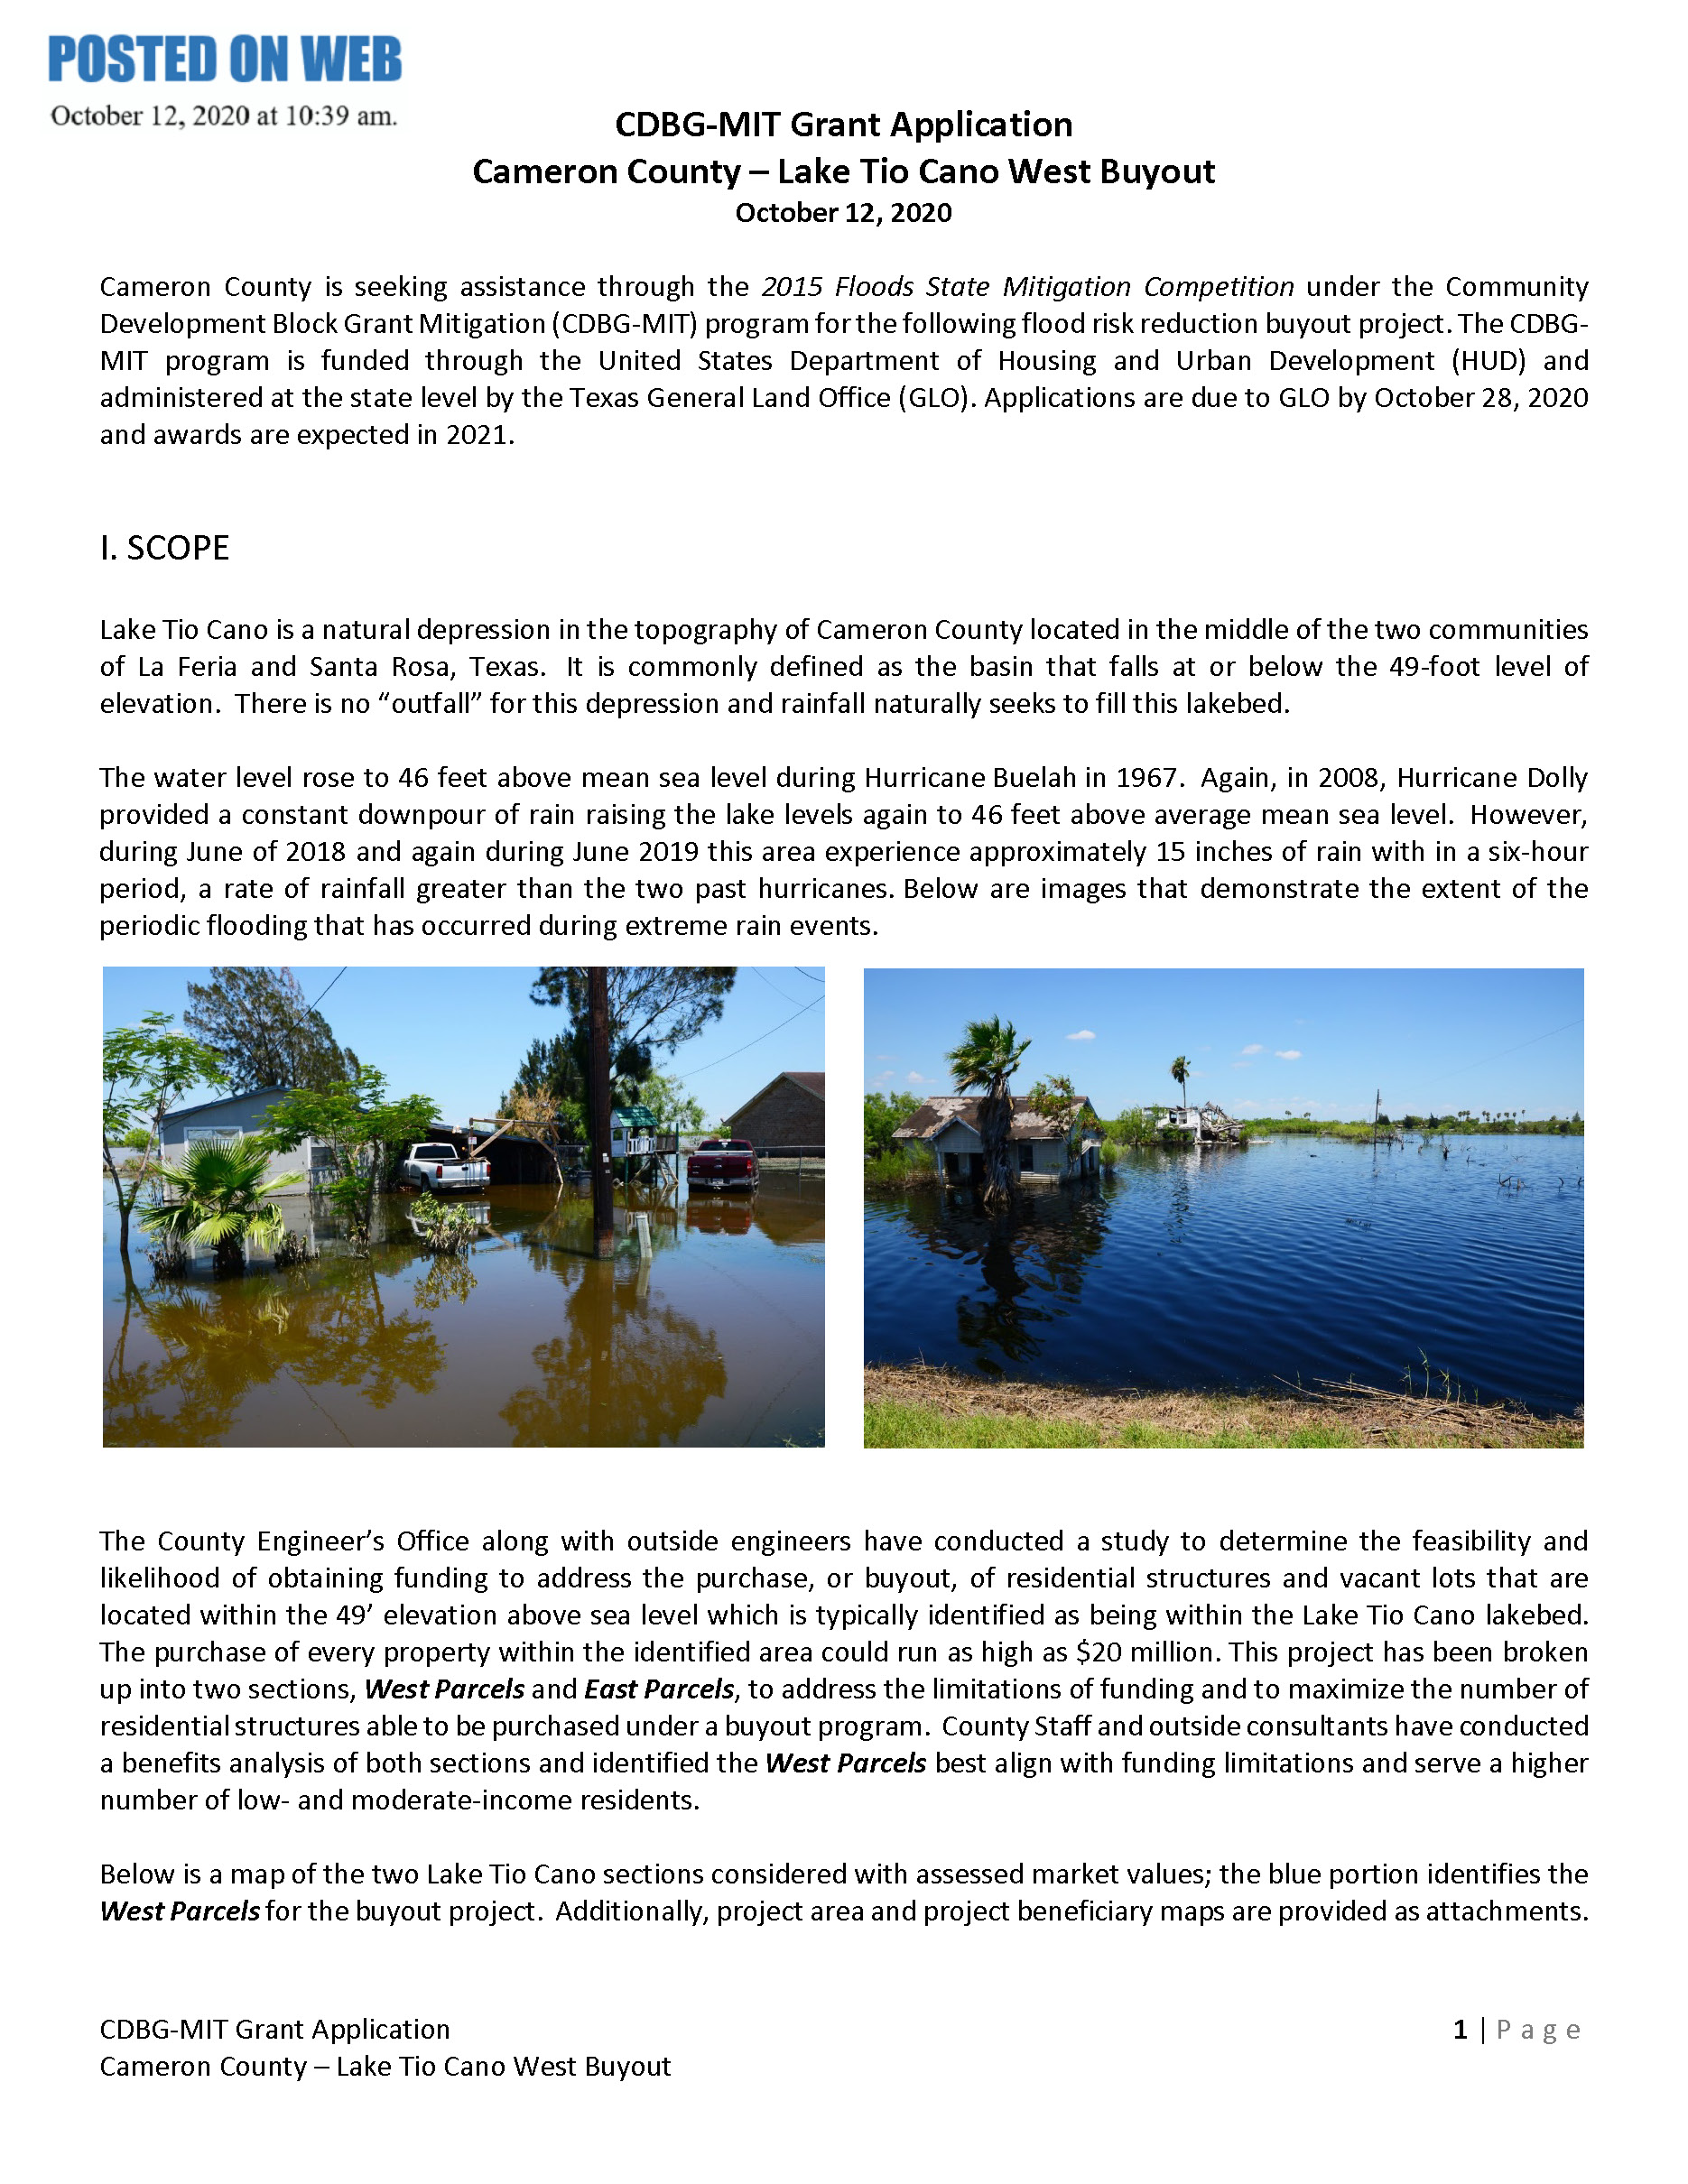 Lake Tio Cano West Buyout Public Notice FINAL Page 1